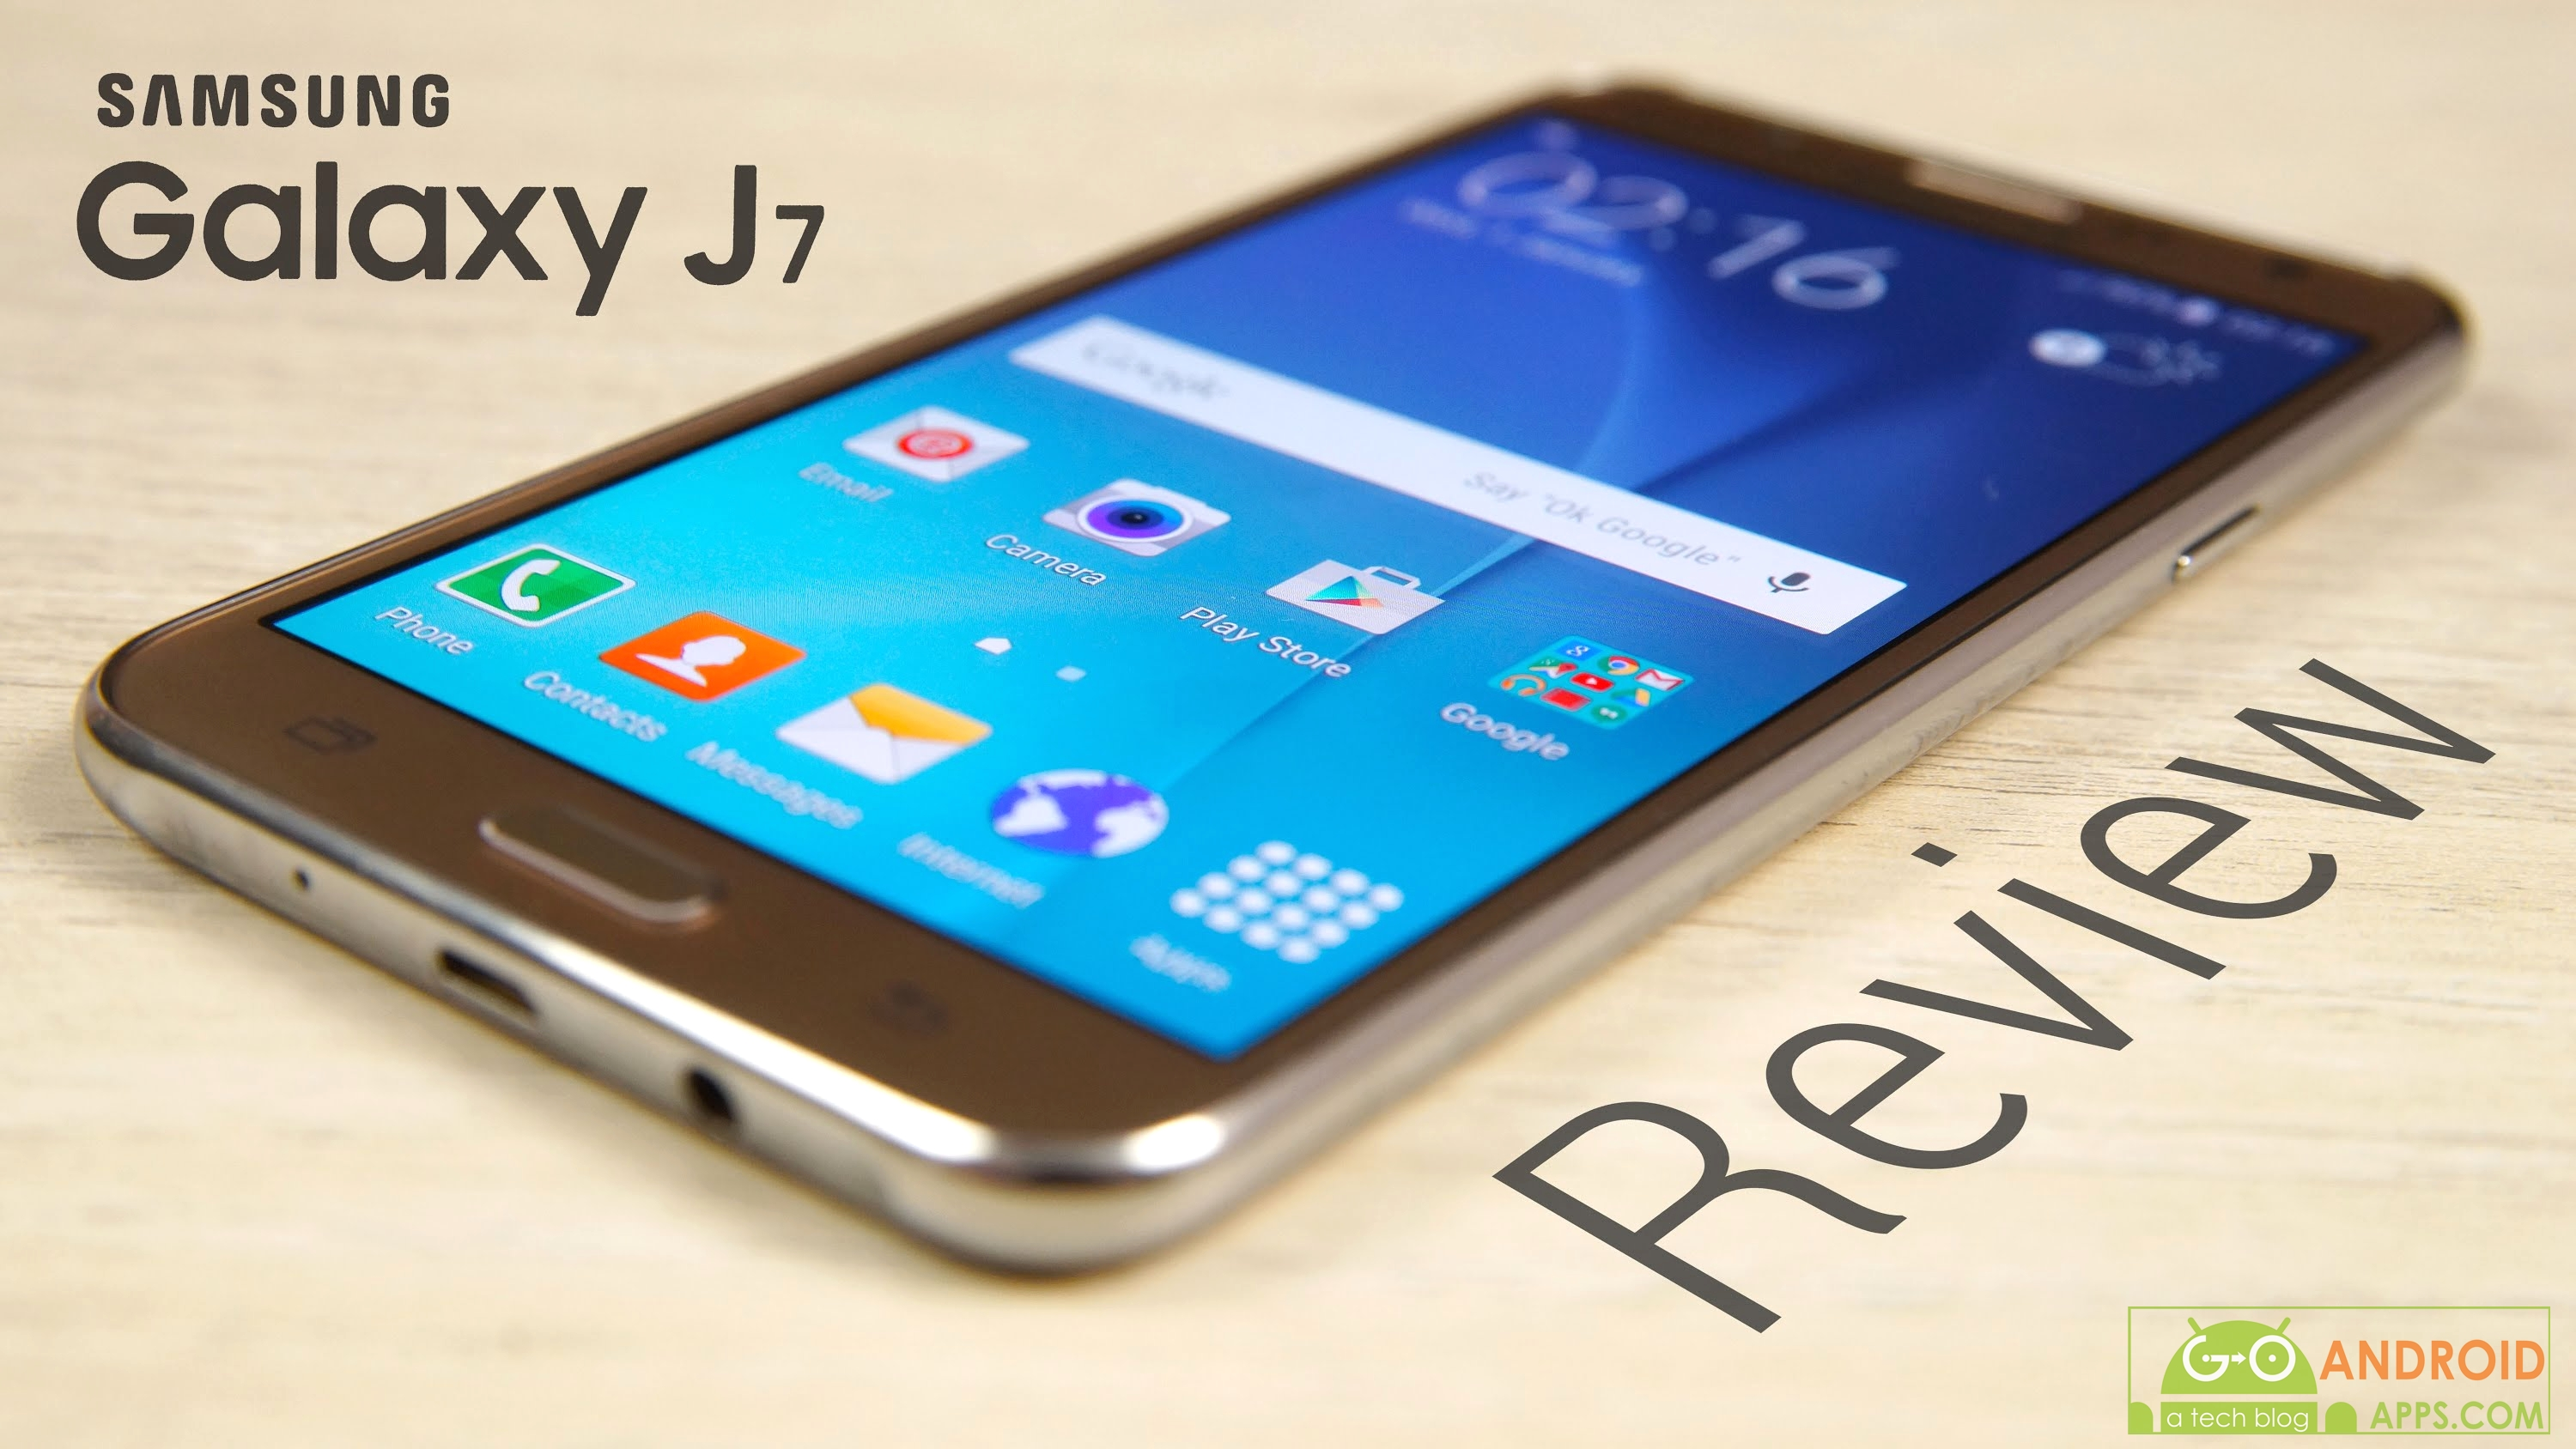 SAMSUNG GALAXY J7 (2016) REVIEWS - Go Android Apps